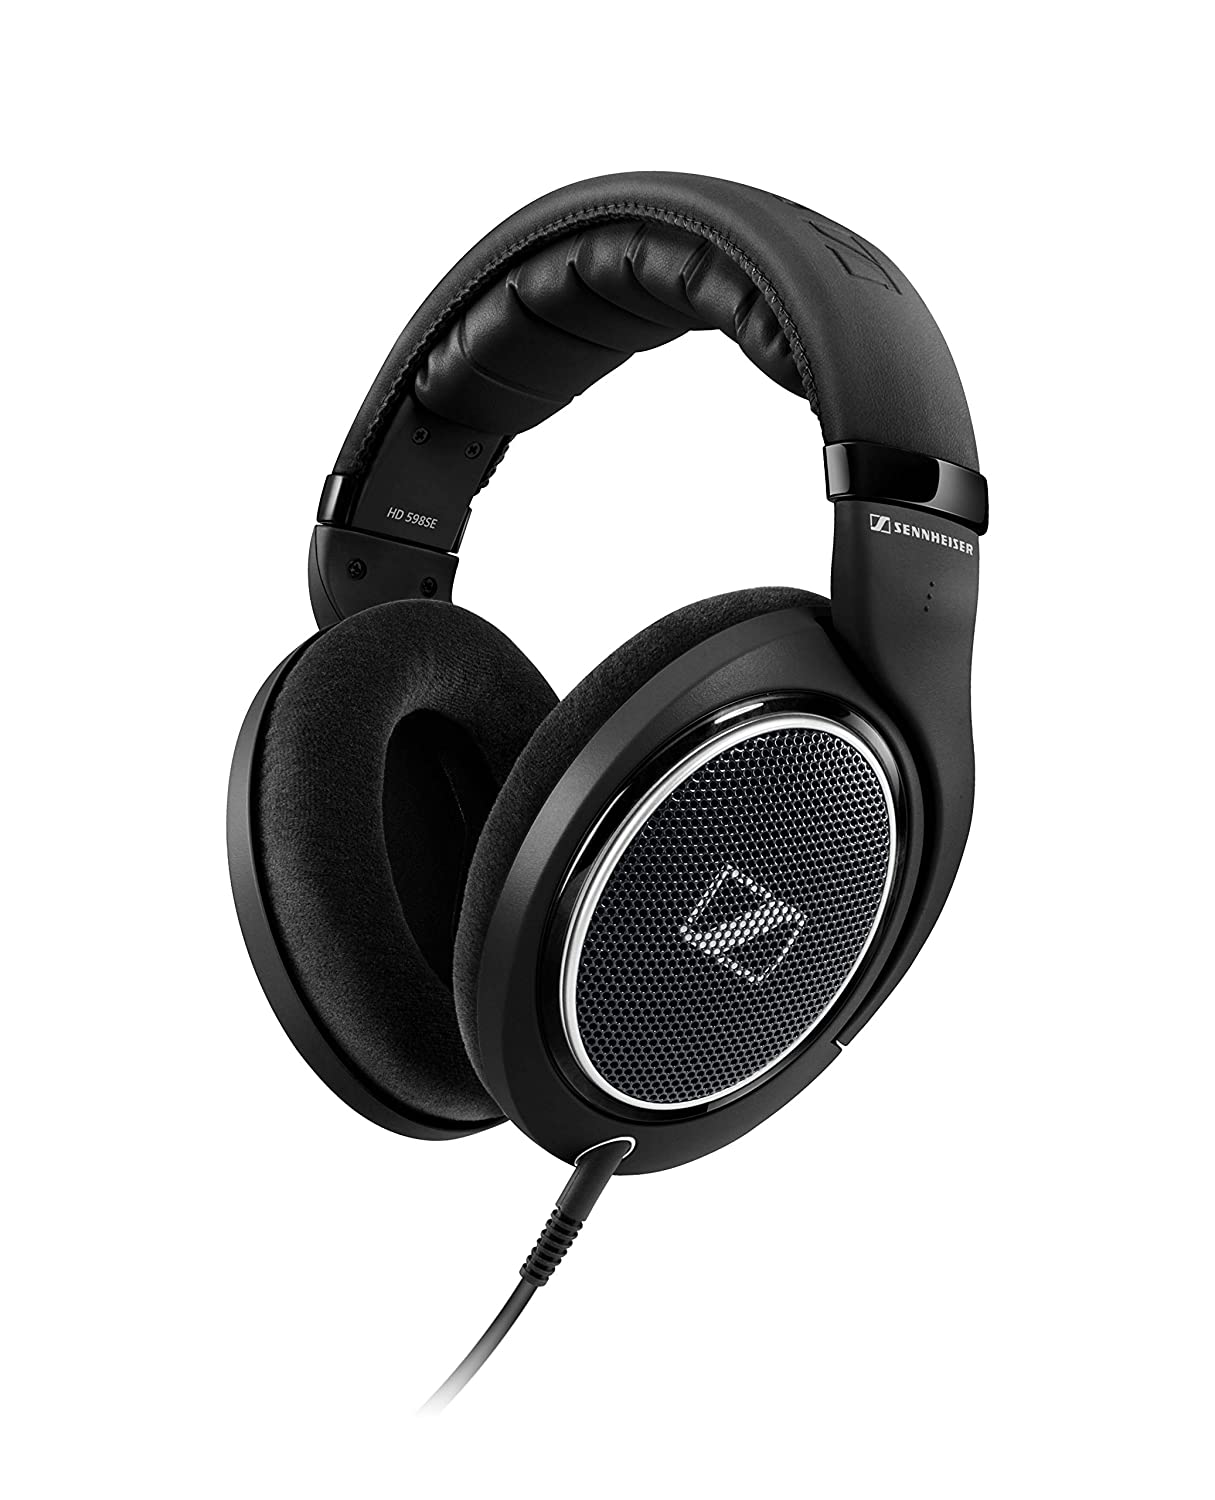 Cuffie Stereo Hi-Fi Sennheiser HD 598 Special Edition per 109,99€ [amazon.it]